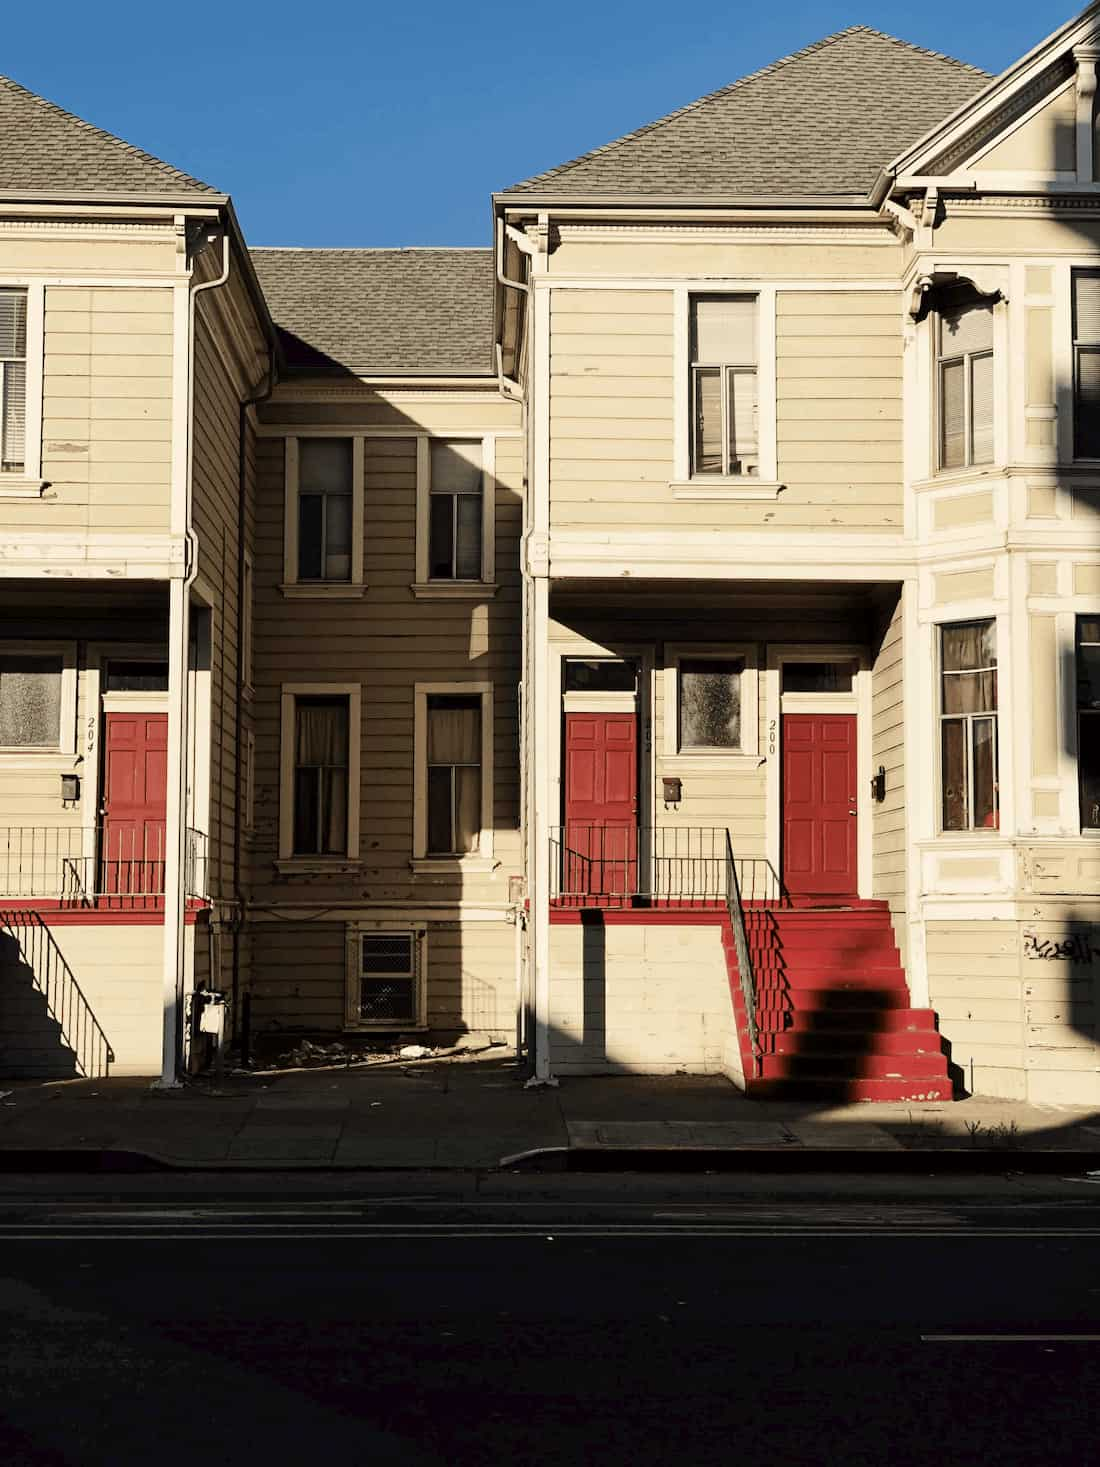 Residential real estate properties in East Bay, CA, great for investing!